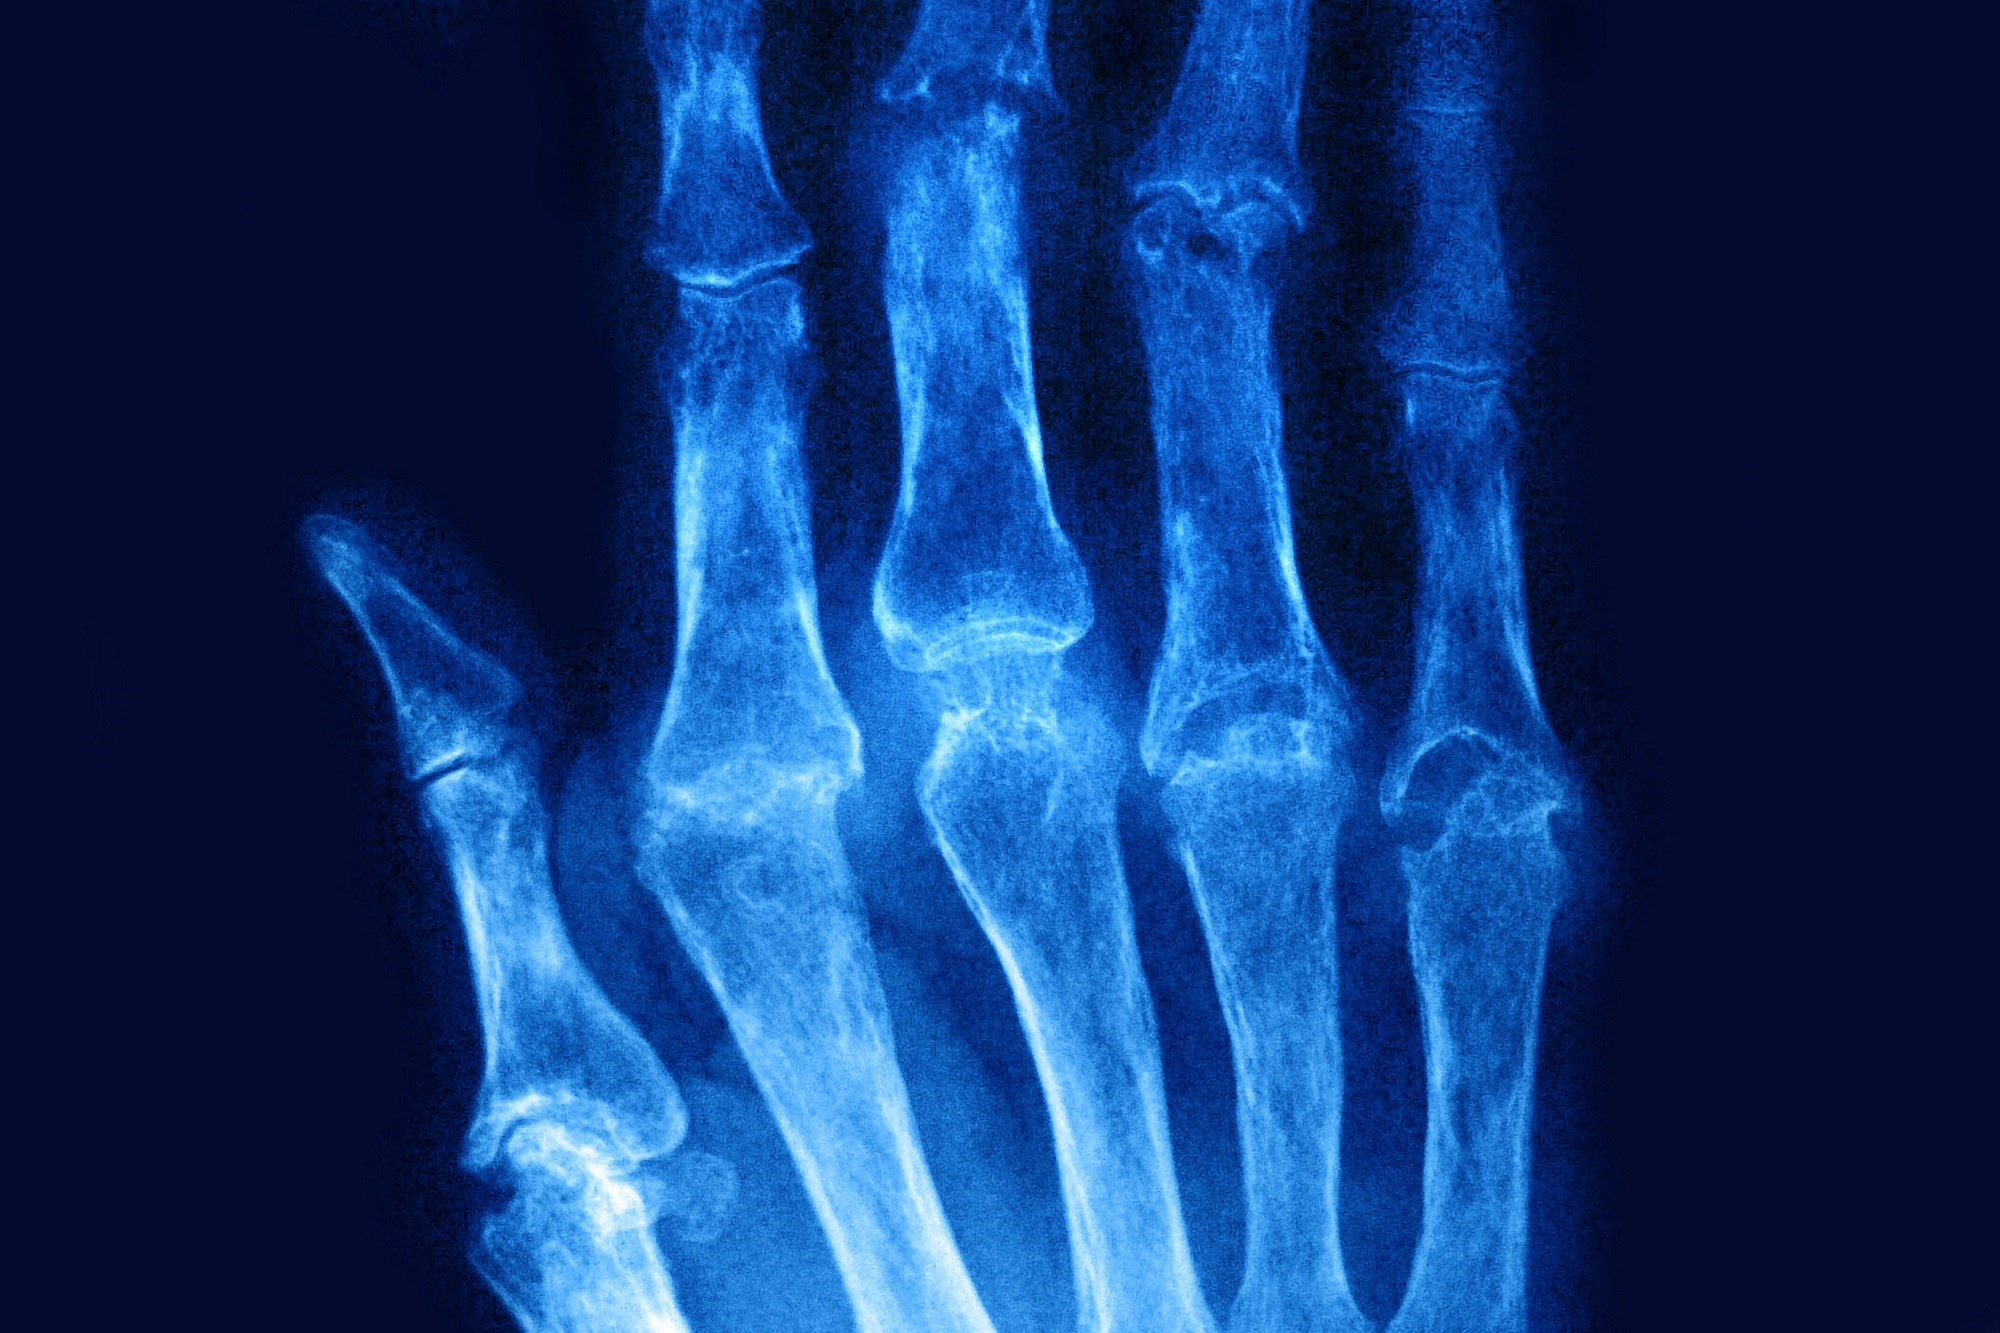 Periarticular Bone Loss Inhibition Linked to Clinical Remission in RA